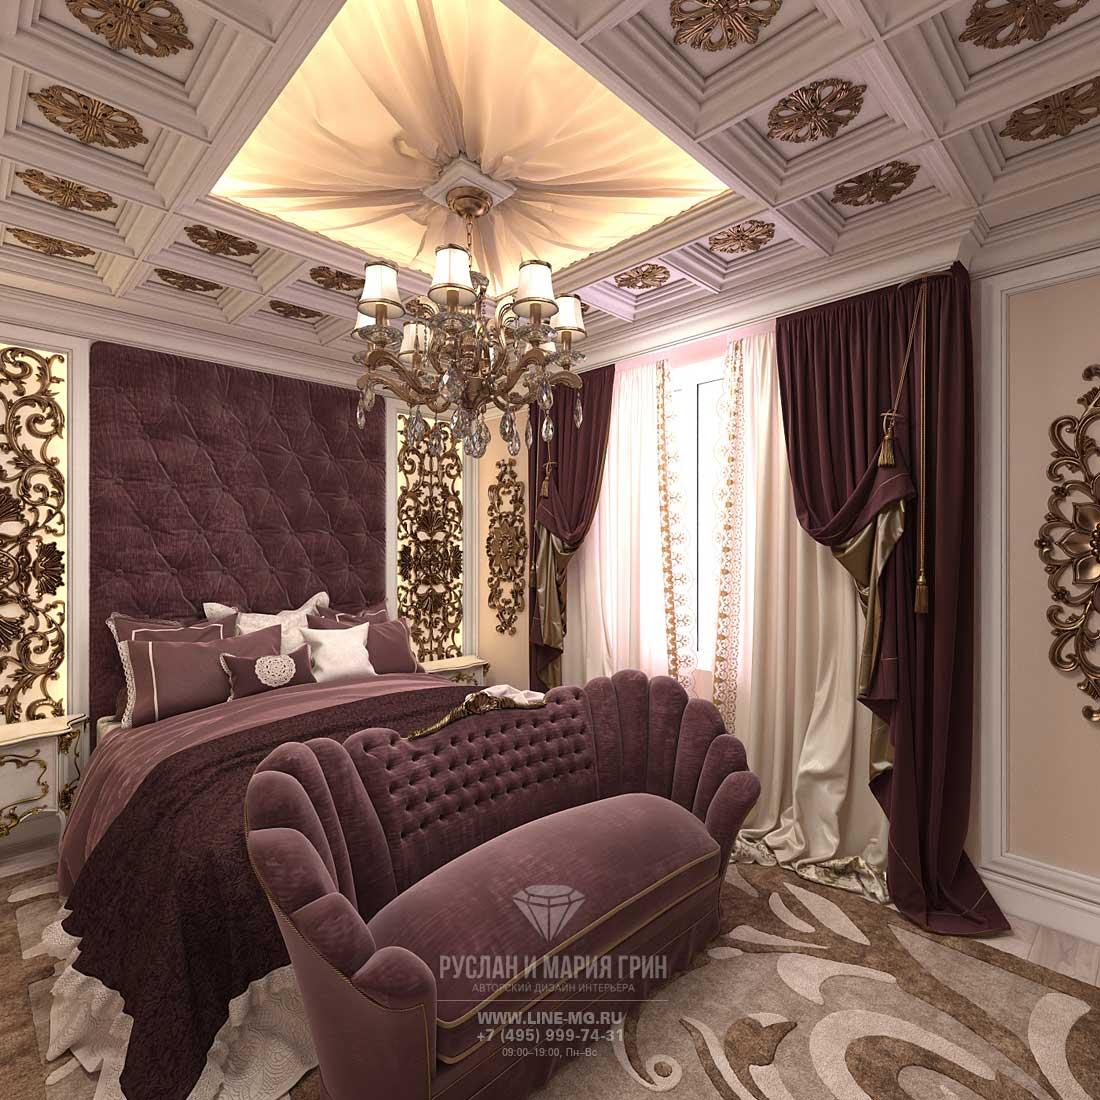 Interior Design Project And Renovation. Classic Palatial